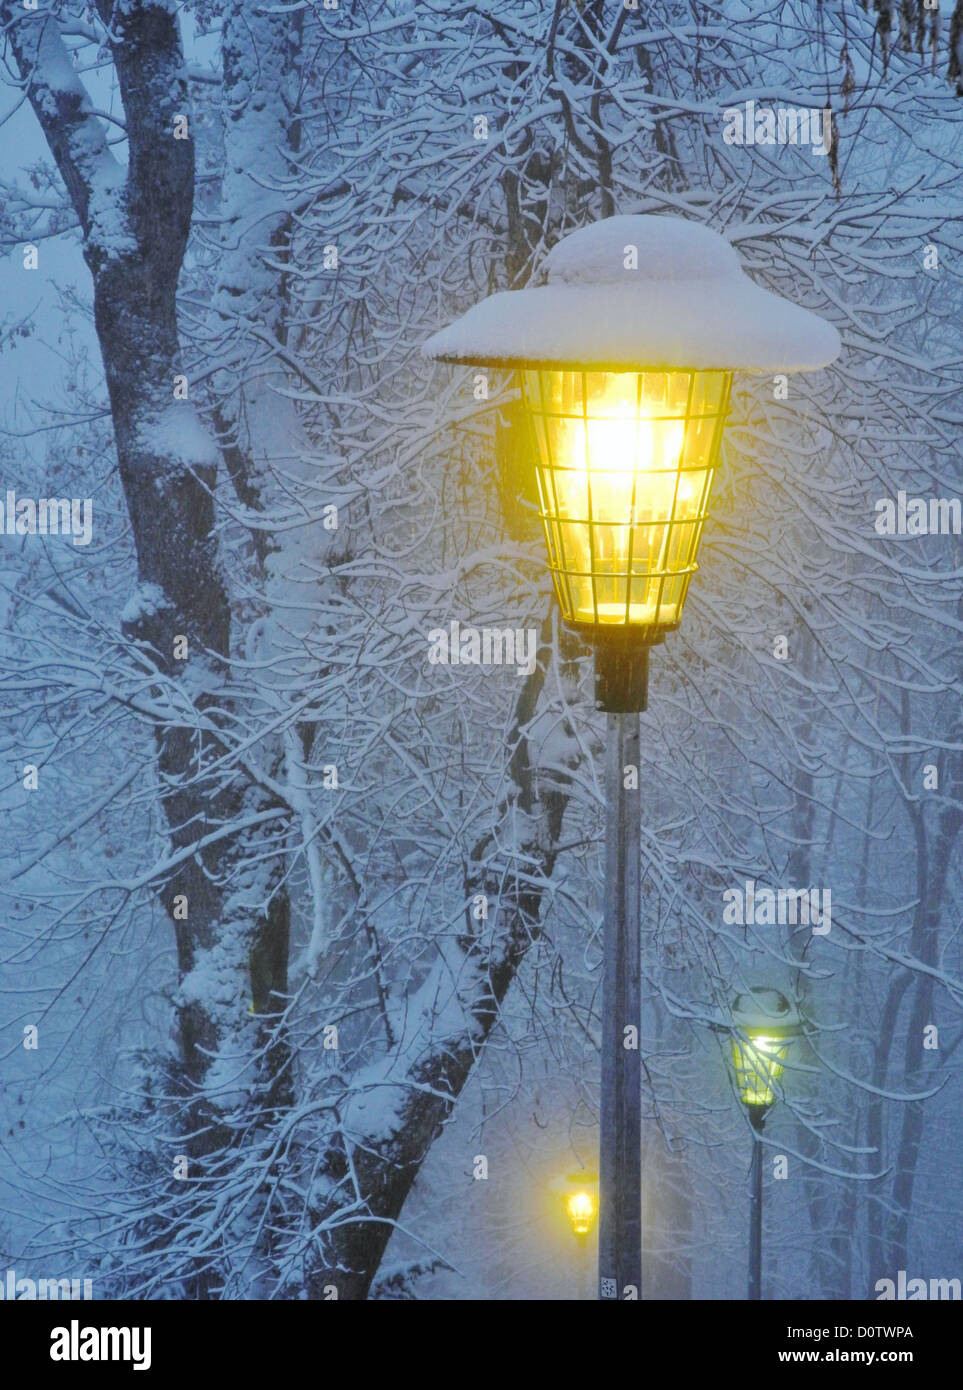 Switzerland, Europe, Leysin, winter, snow, cold, lantern, street ...